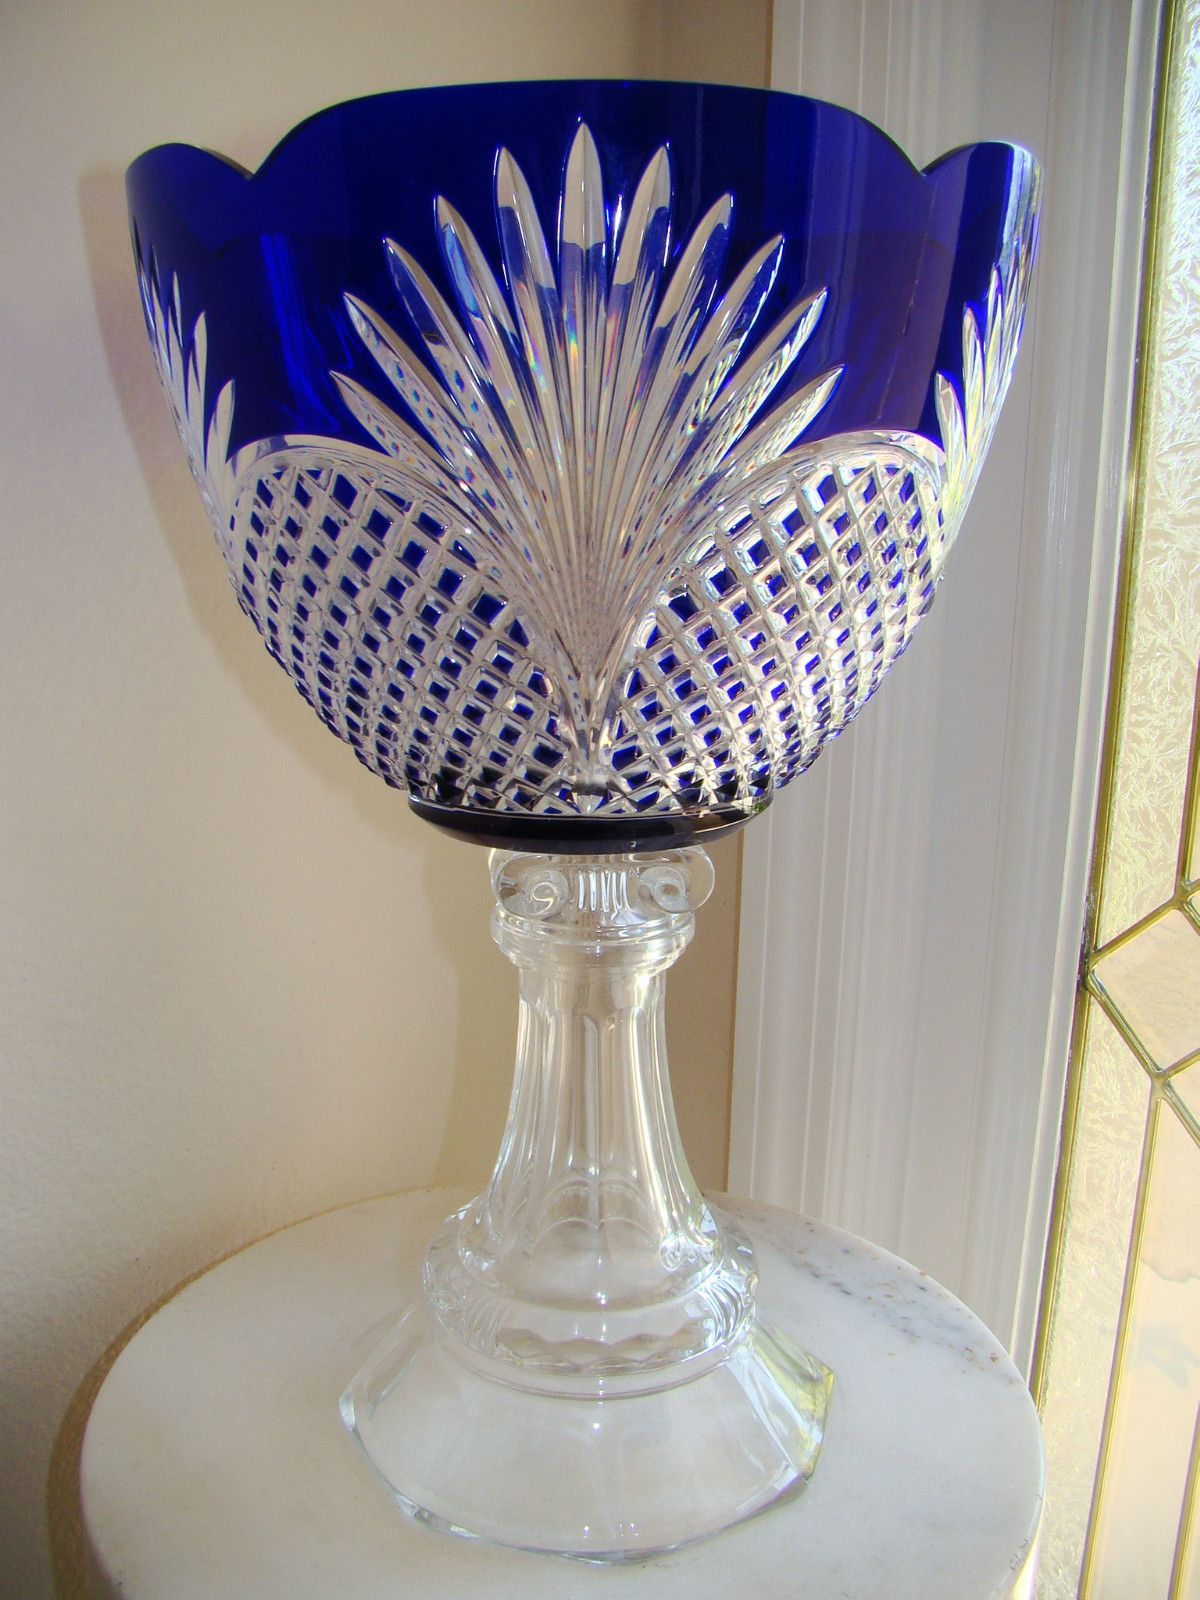 louis stands pair urns vases large vase pin xv cut on blue glass